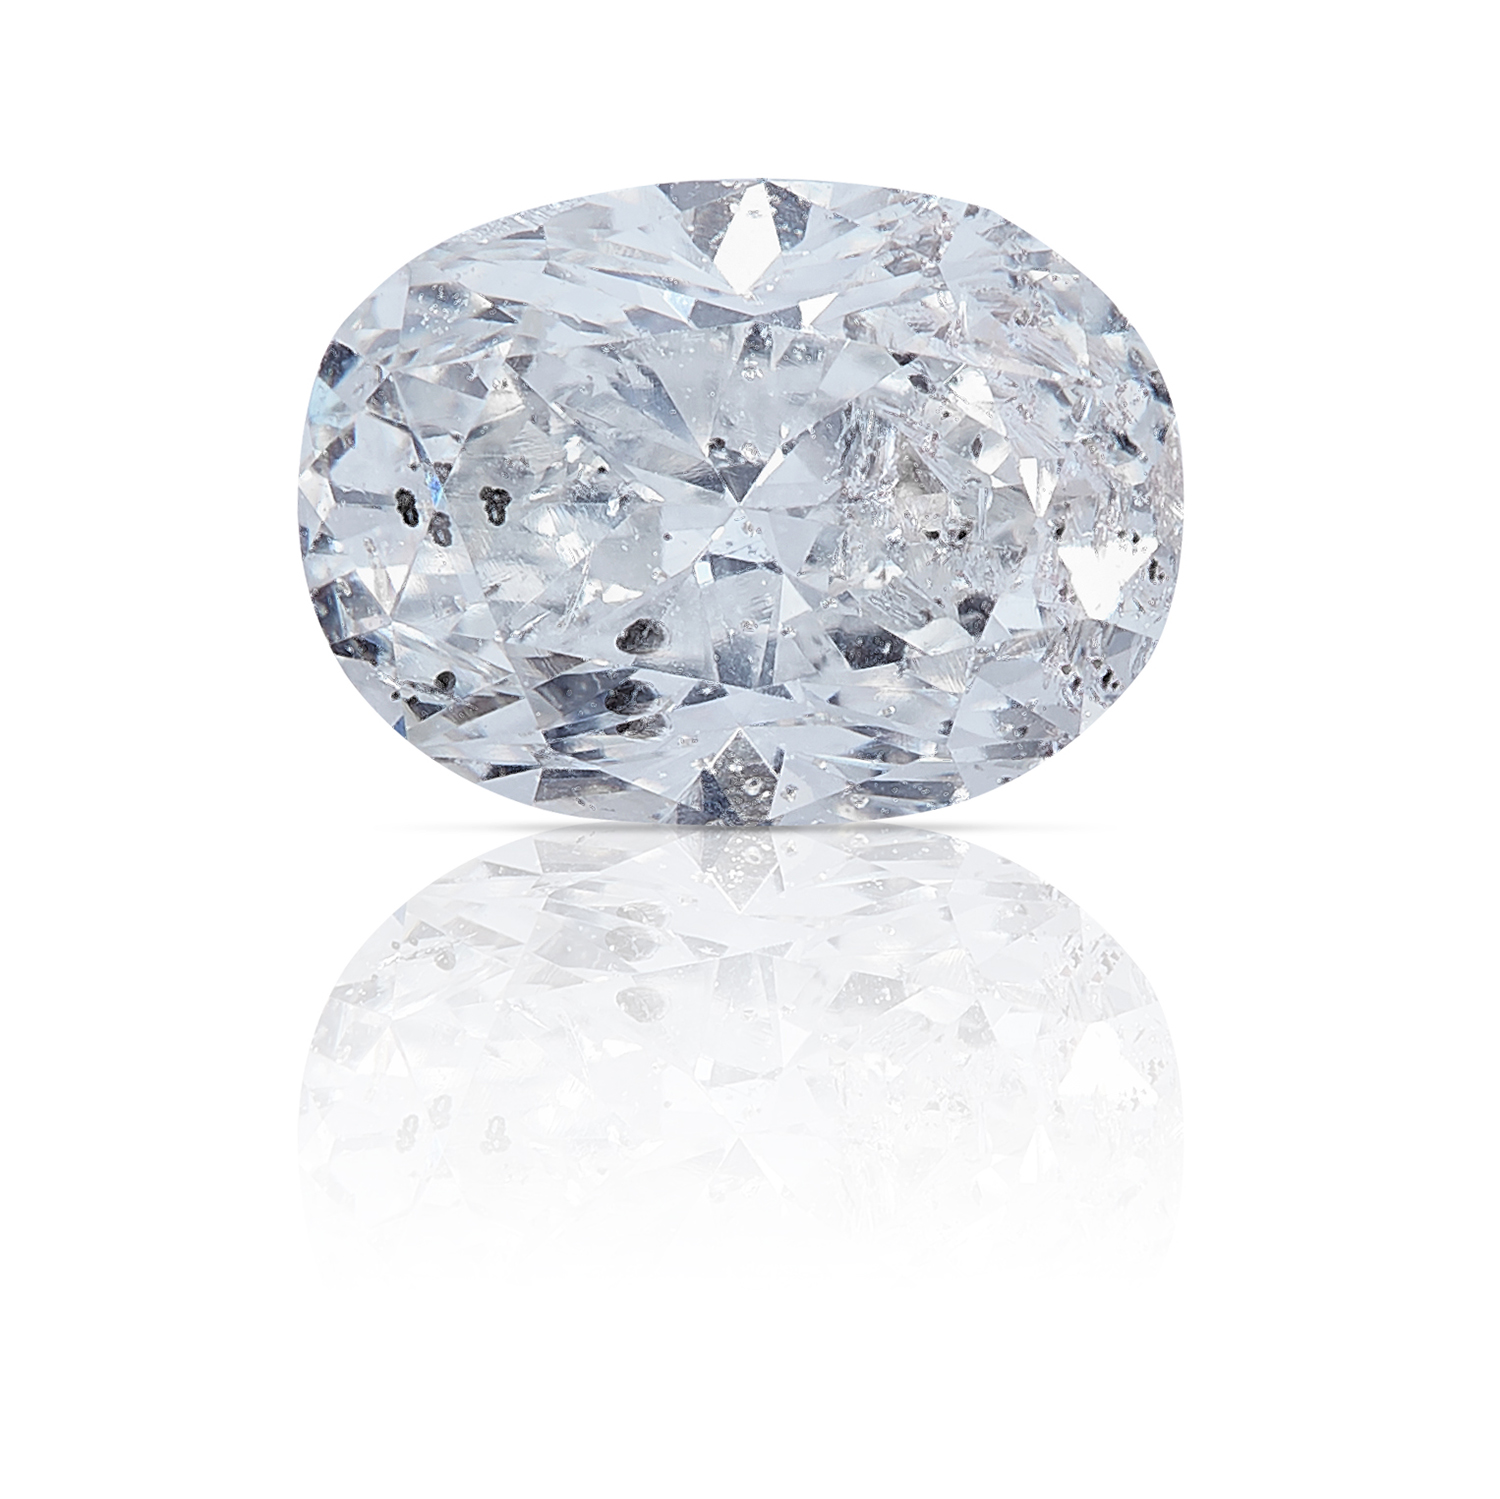 AN OVAL SHAPED BRILLIANT CUT DIAMOND TOTALLING 0.65cts, UNMOUNTED.